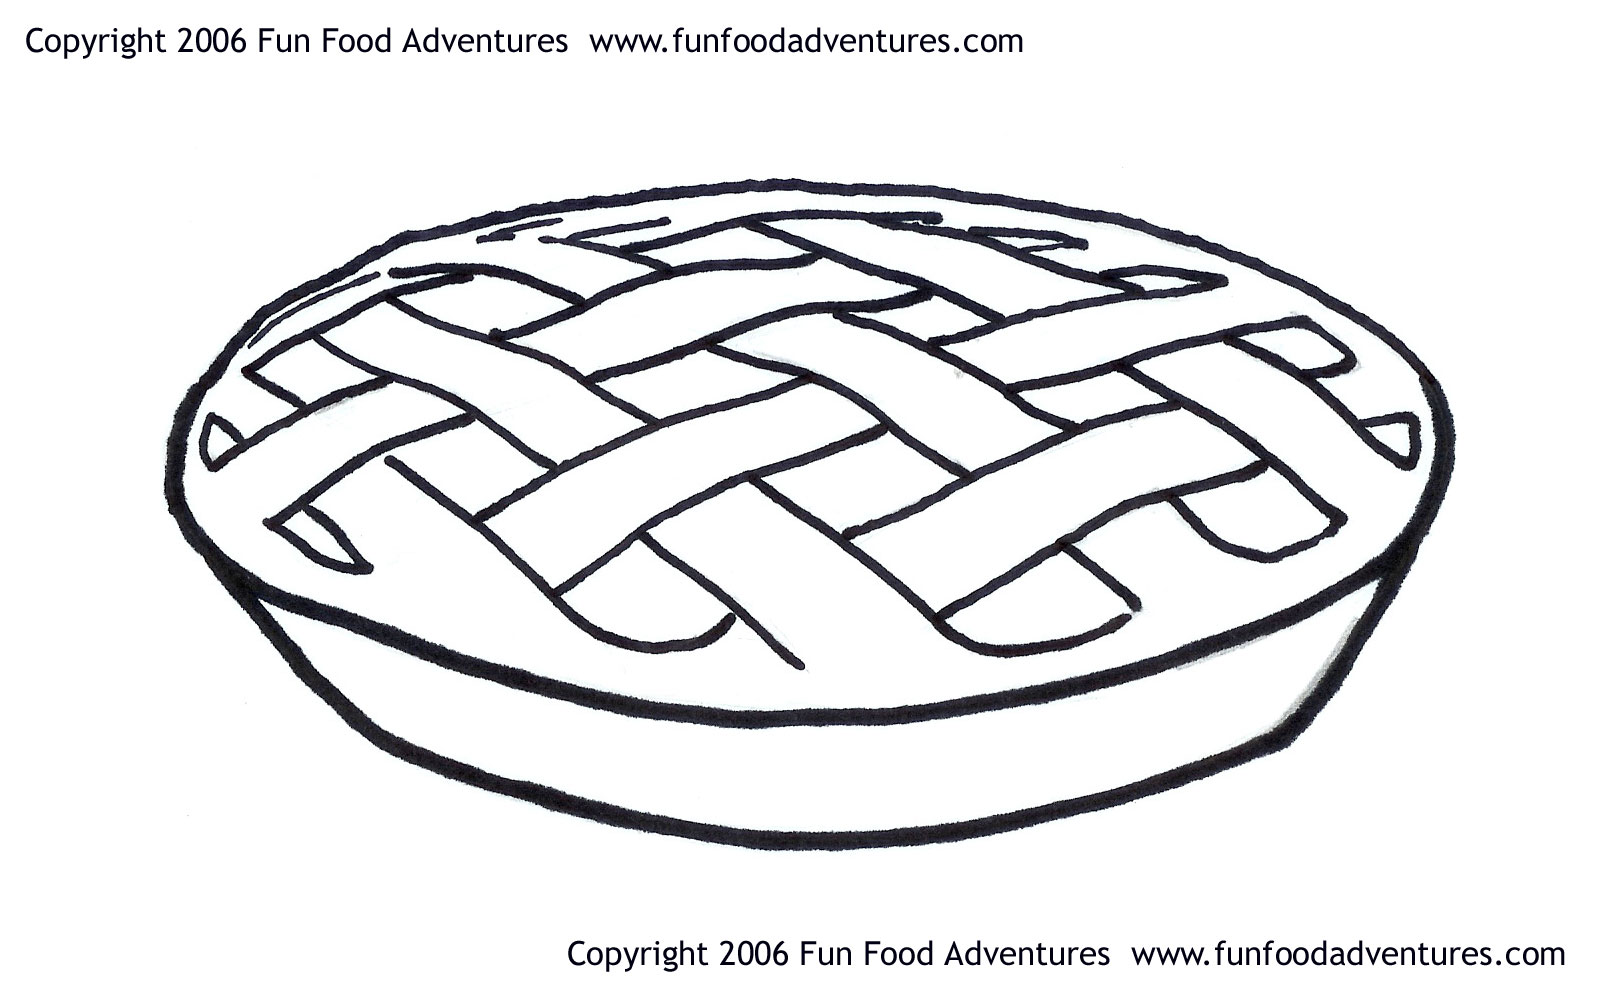 Coloring Pages To Print Free 1 1600x1000 Drawn Pies Apple Pie